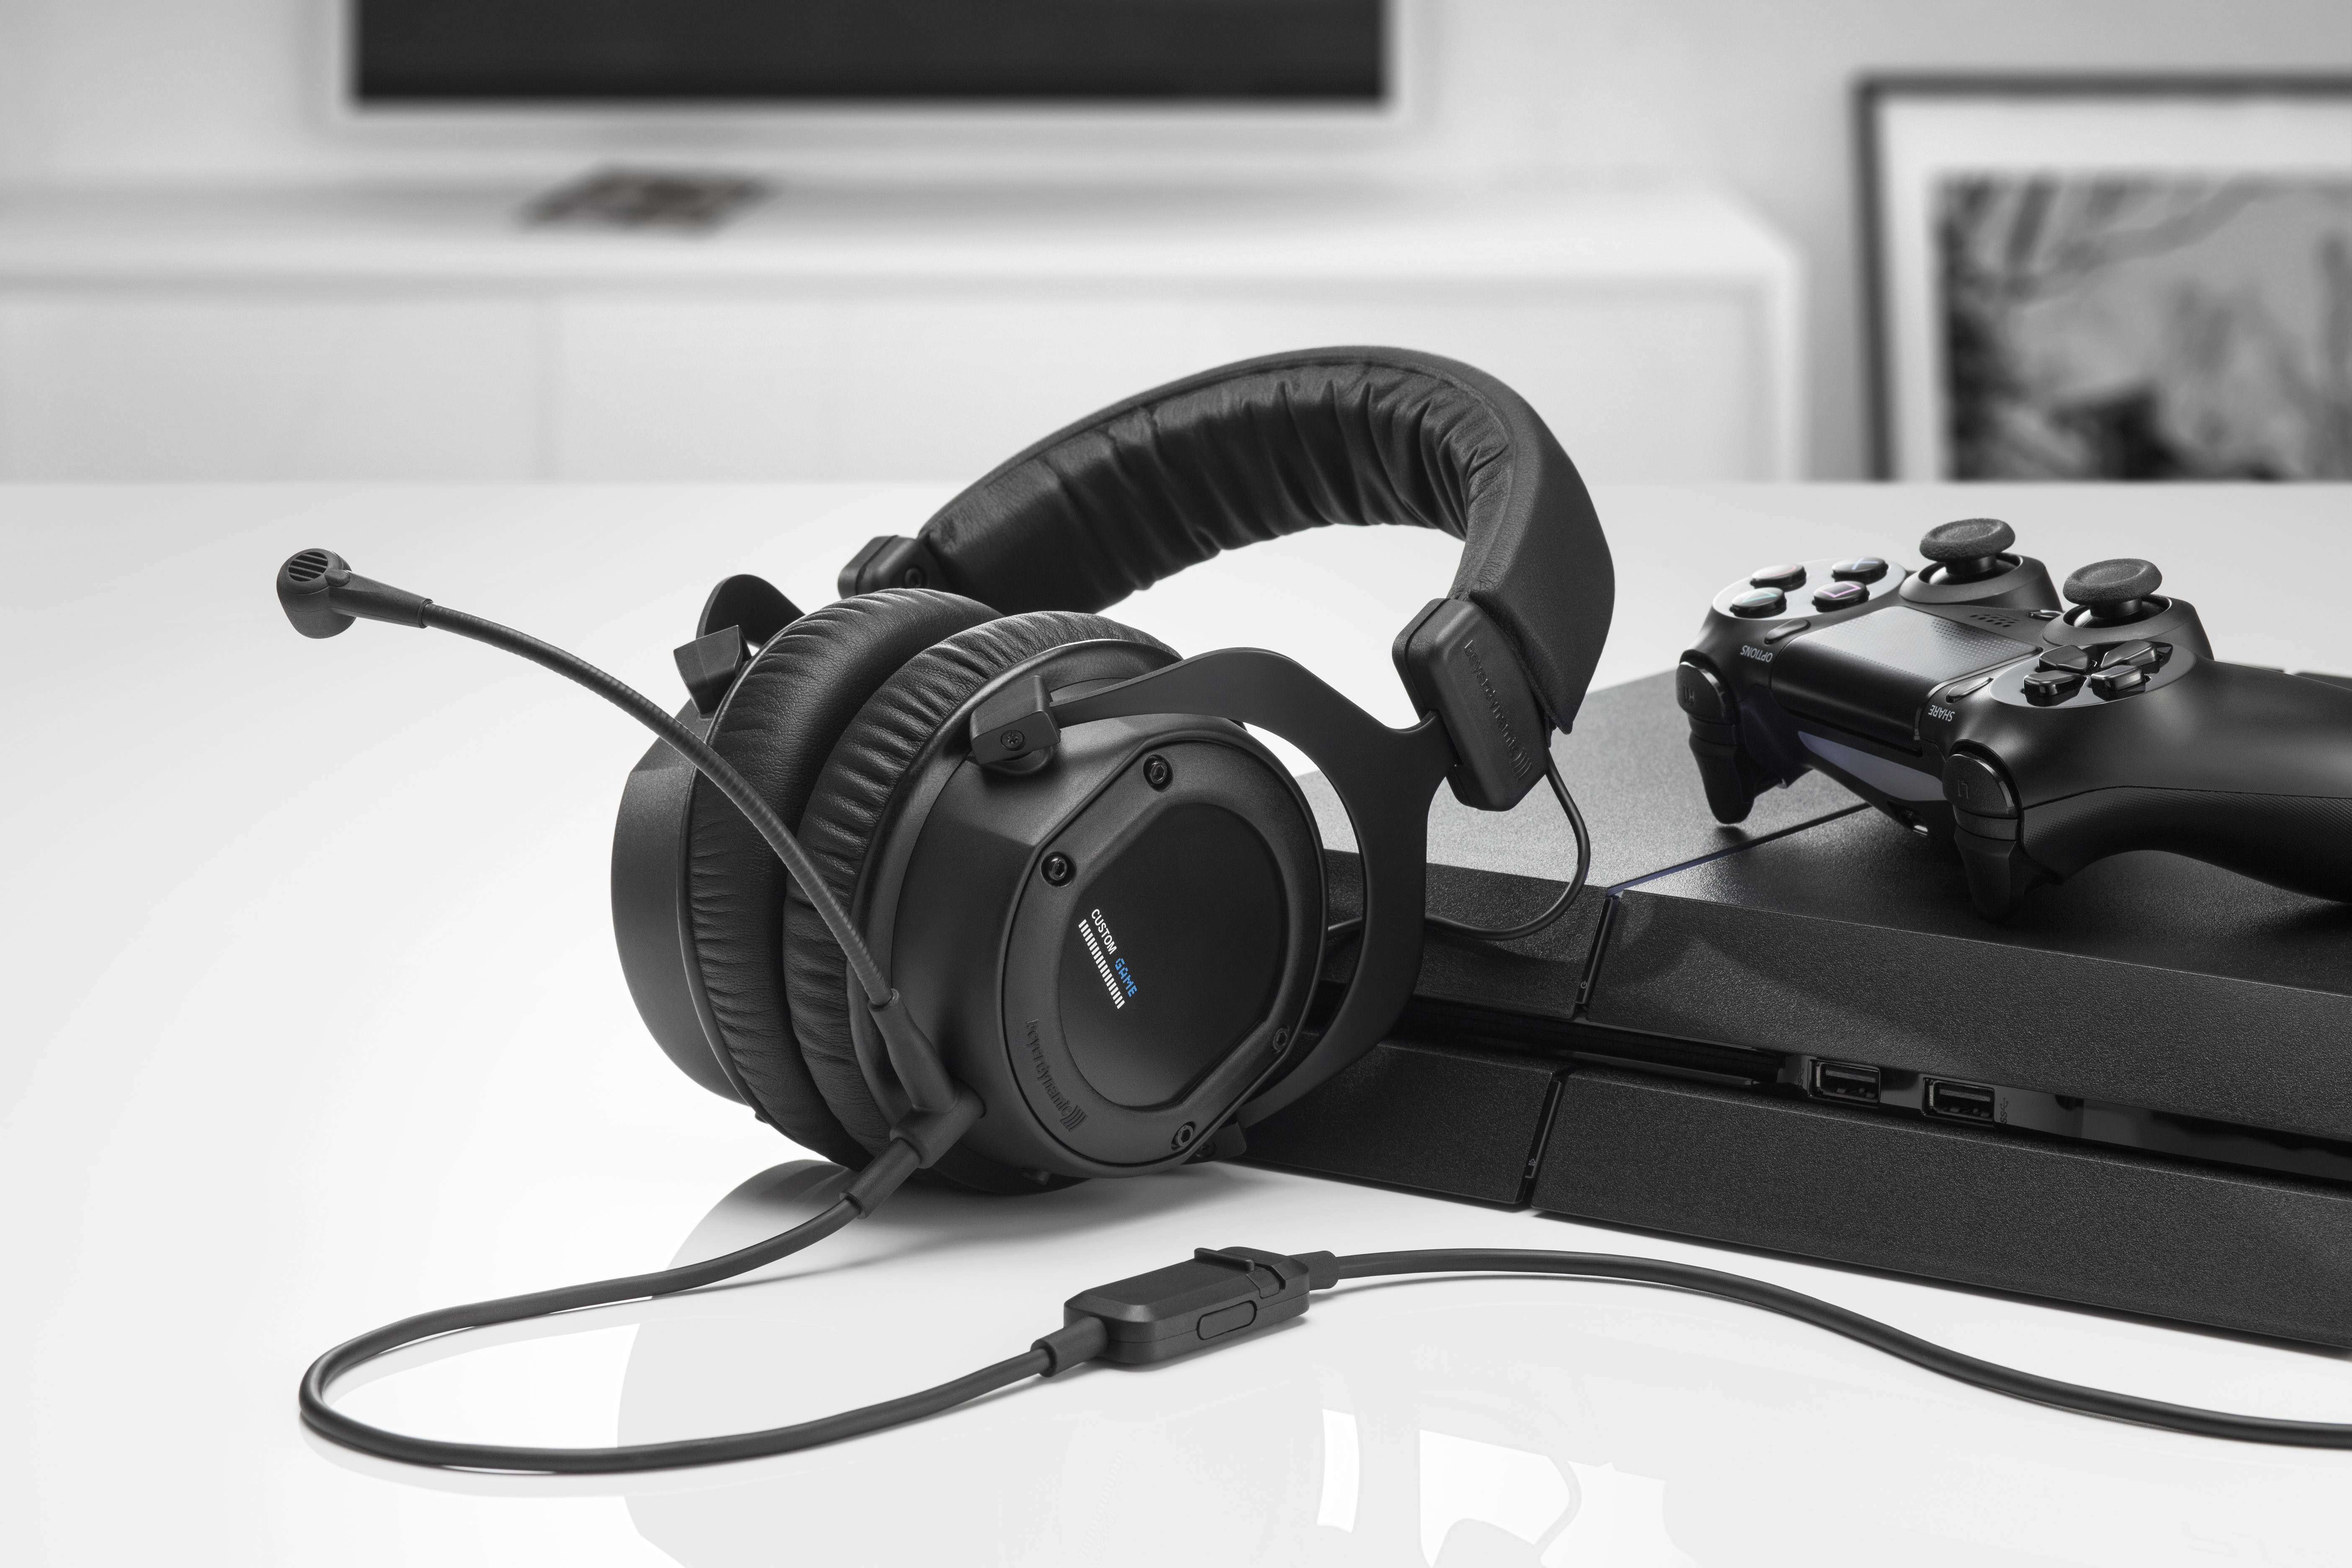 Beyerdynamic Announces The Custom Game Headset To Be Presented At Headphone Dtx 350m As First Gaming Of Successful Product Series It Takes Advantages One Pro Street And Studio Transfers